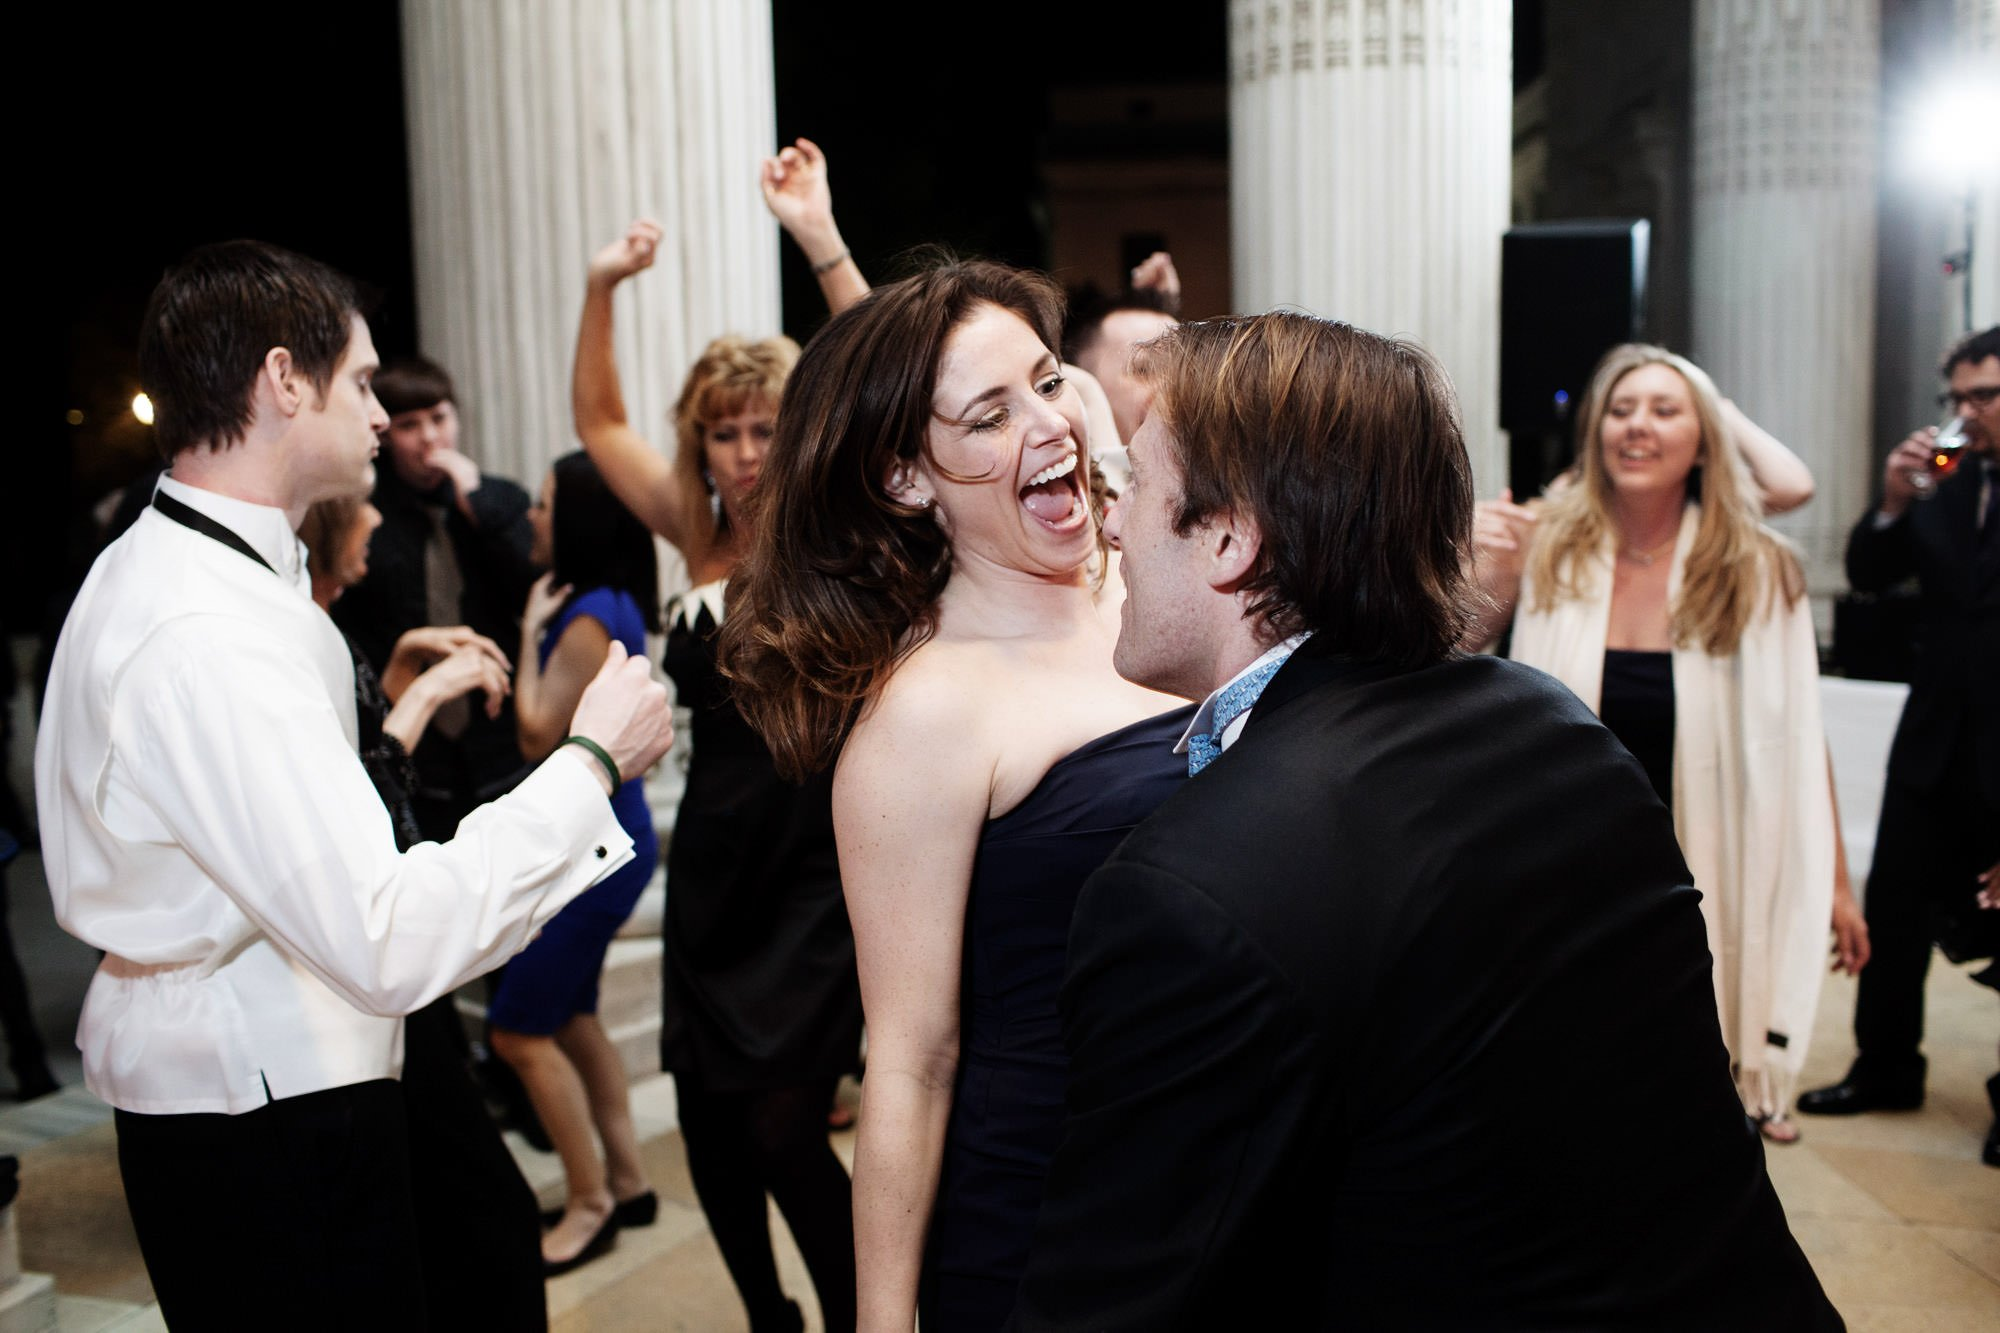 Guests dance during the DAR Memorial Continental Hall Wedding reception.